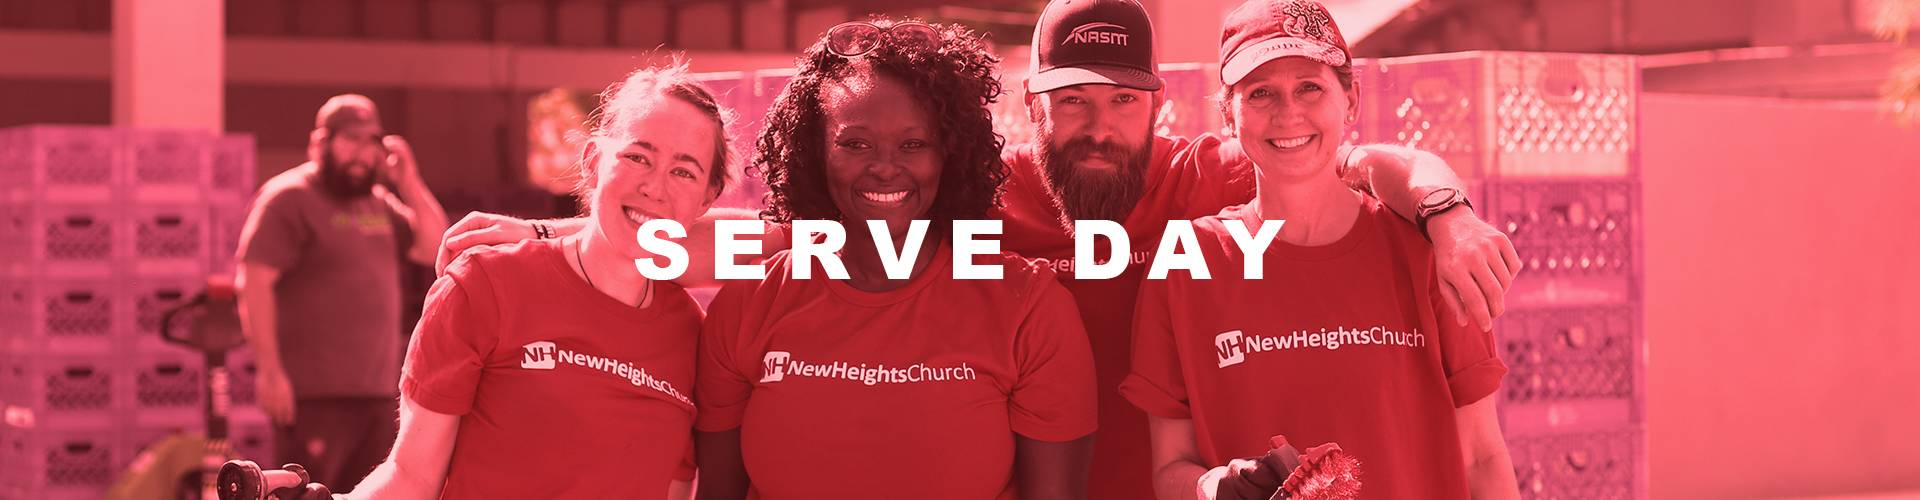 Serve Day Web Banner (1)